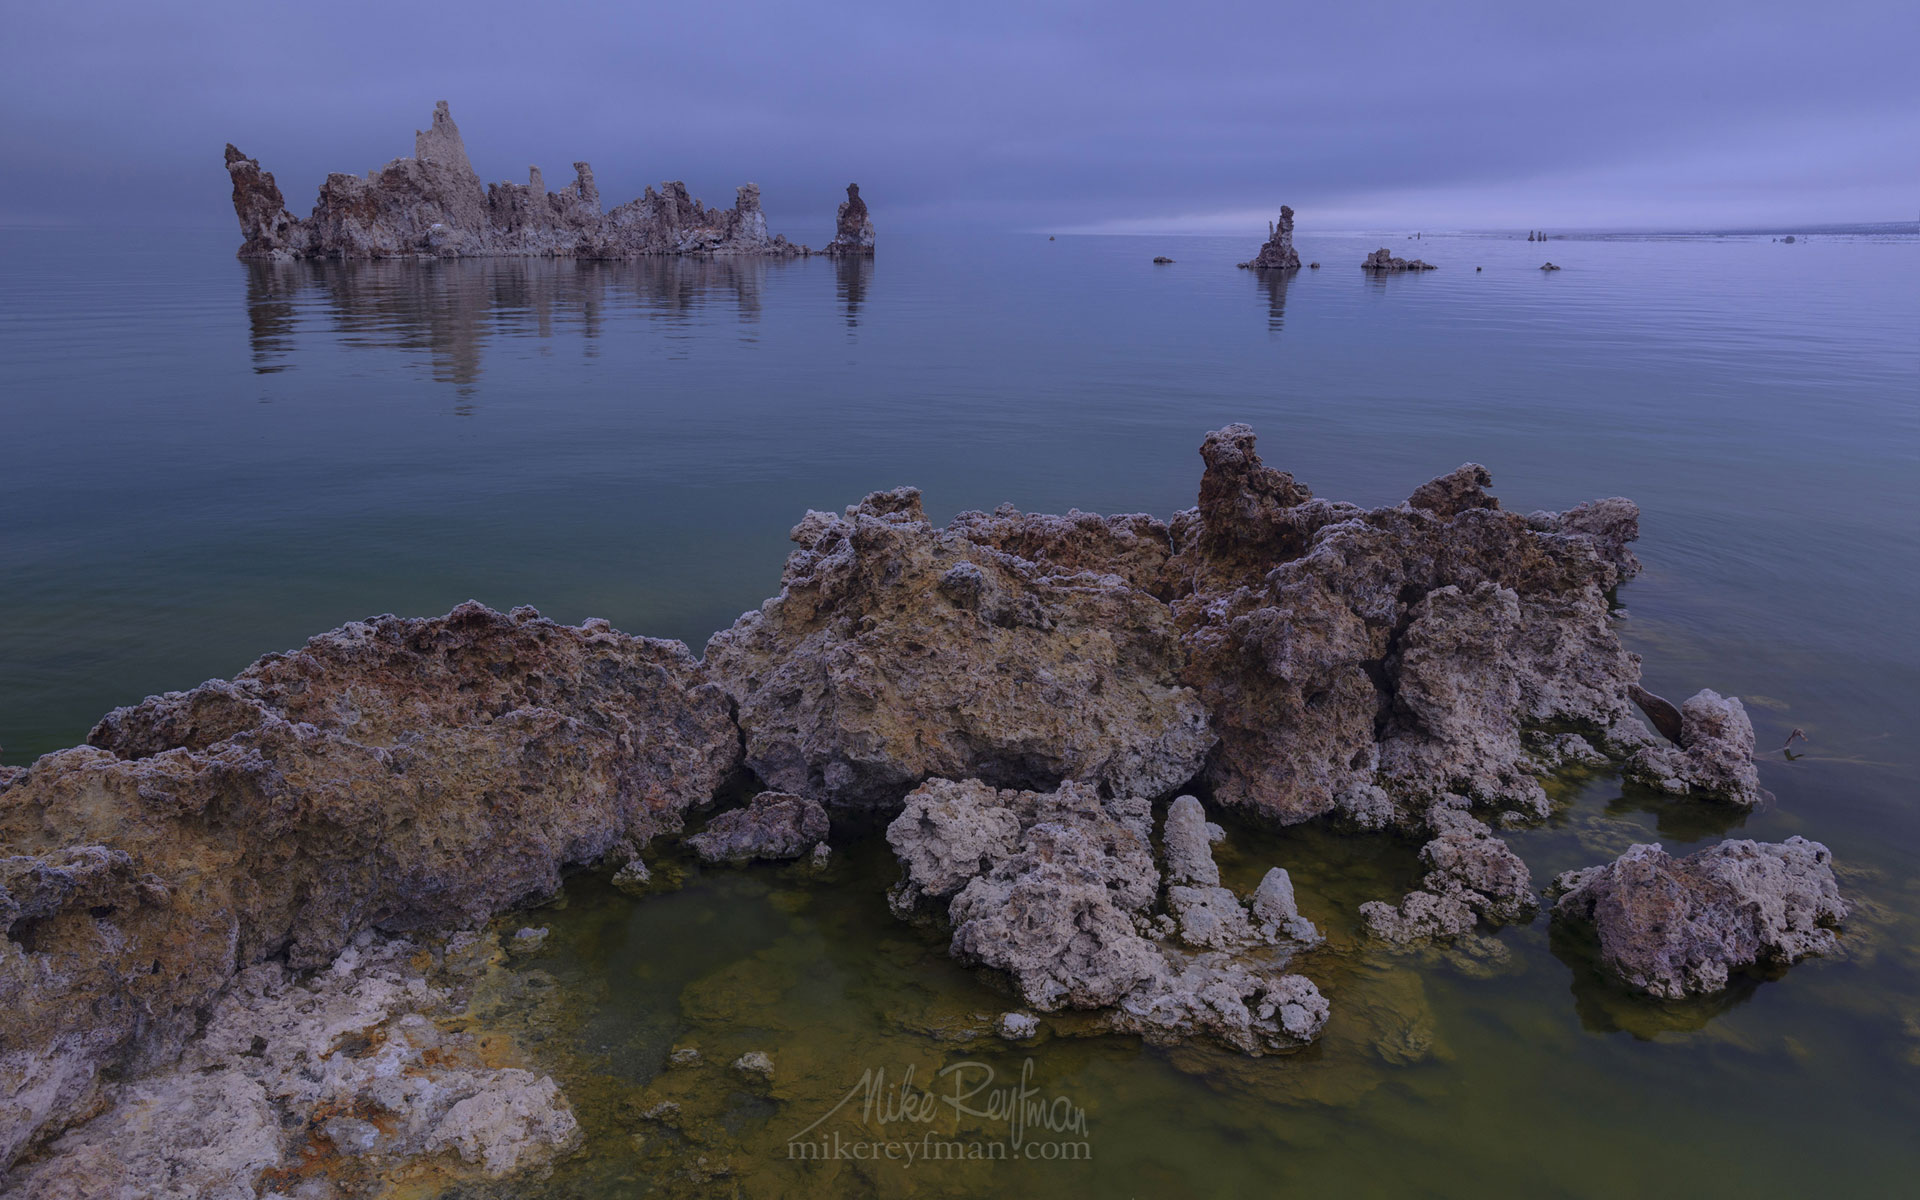 Mono Lake, Tufa State Natural Reserve, Eastern Sierra, California, USA ML1-MRN3X0788 - Mono Lake Tufa State Natural Reserve, Eastern Sierra, California - Mike Reyfman Photography